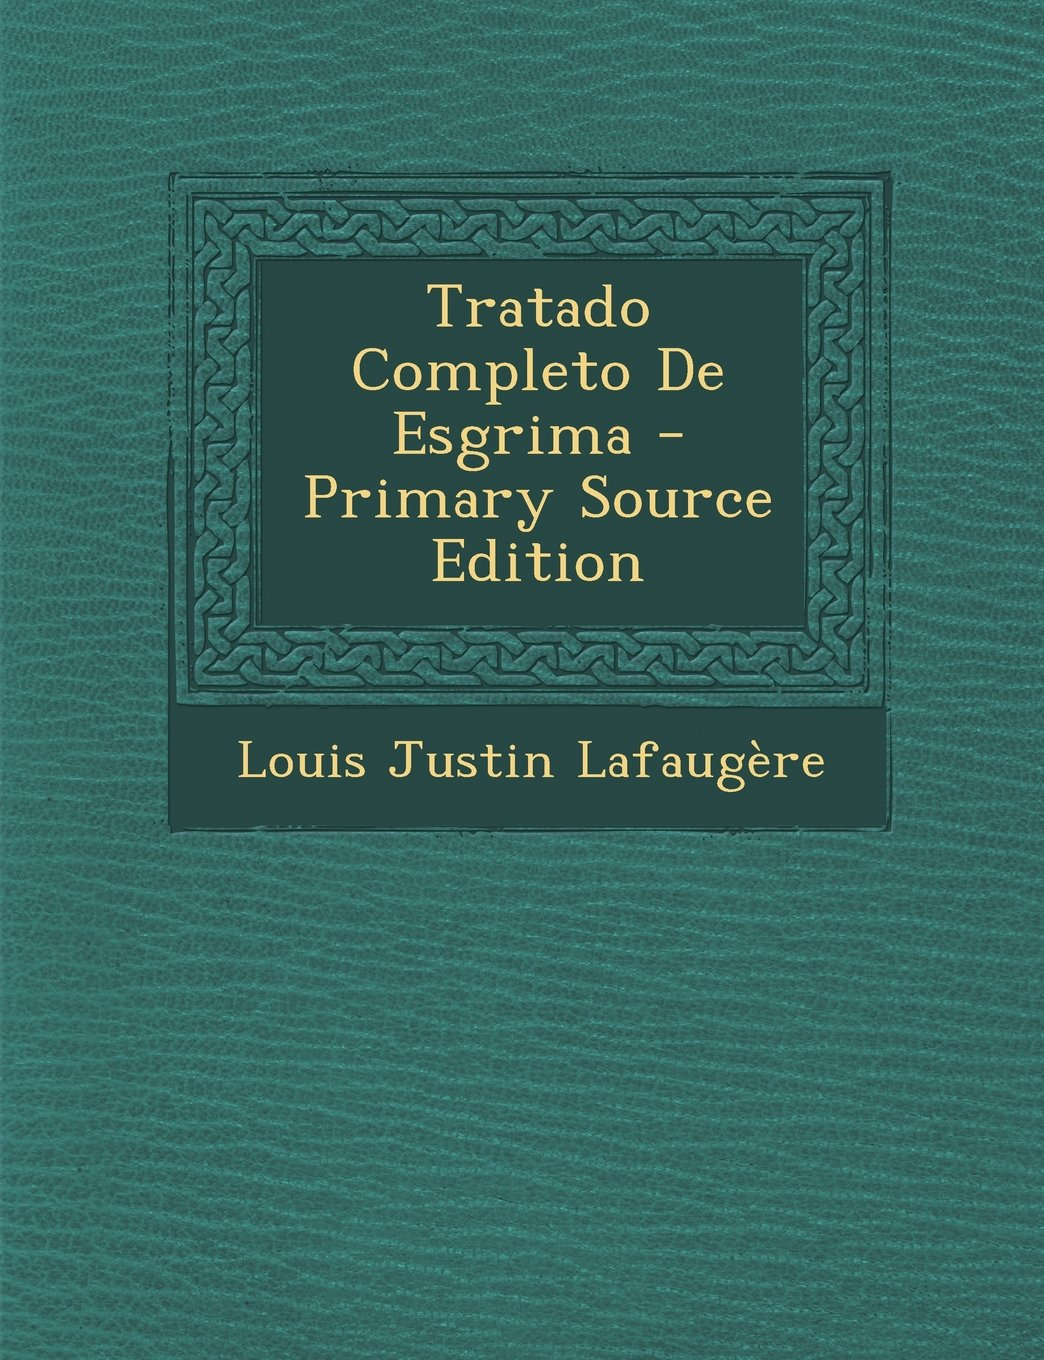 Tratado Completo de Esgrima - Primary Source Edition (Spanish Edition) ebook